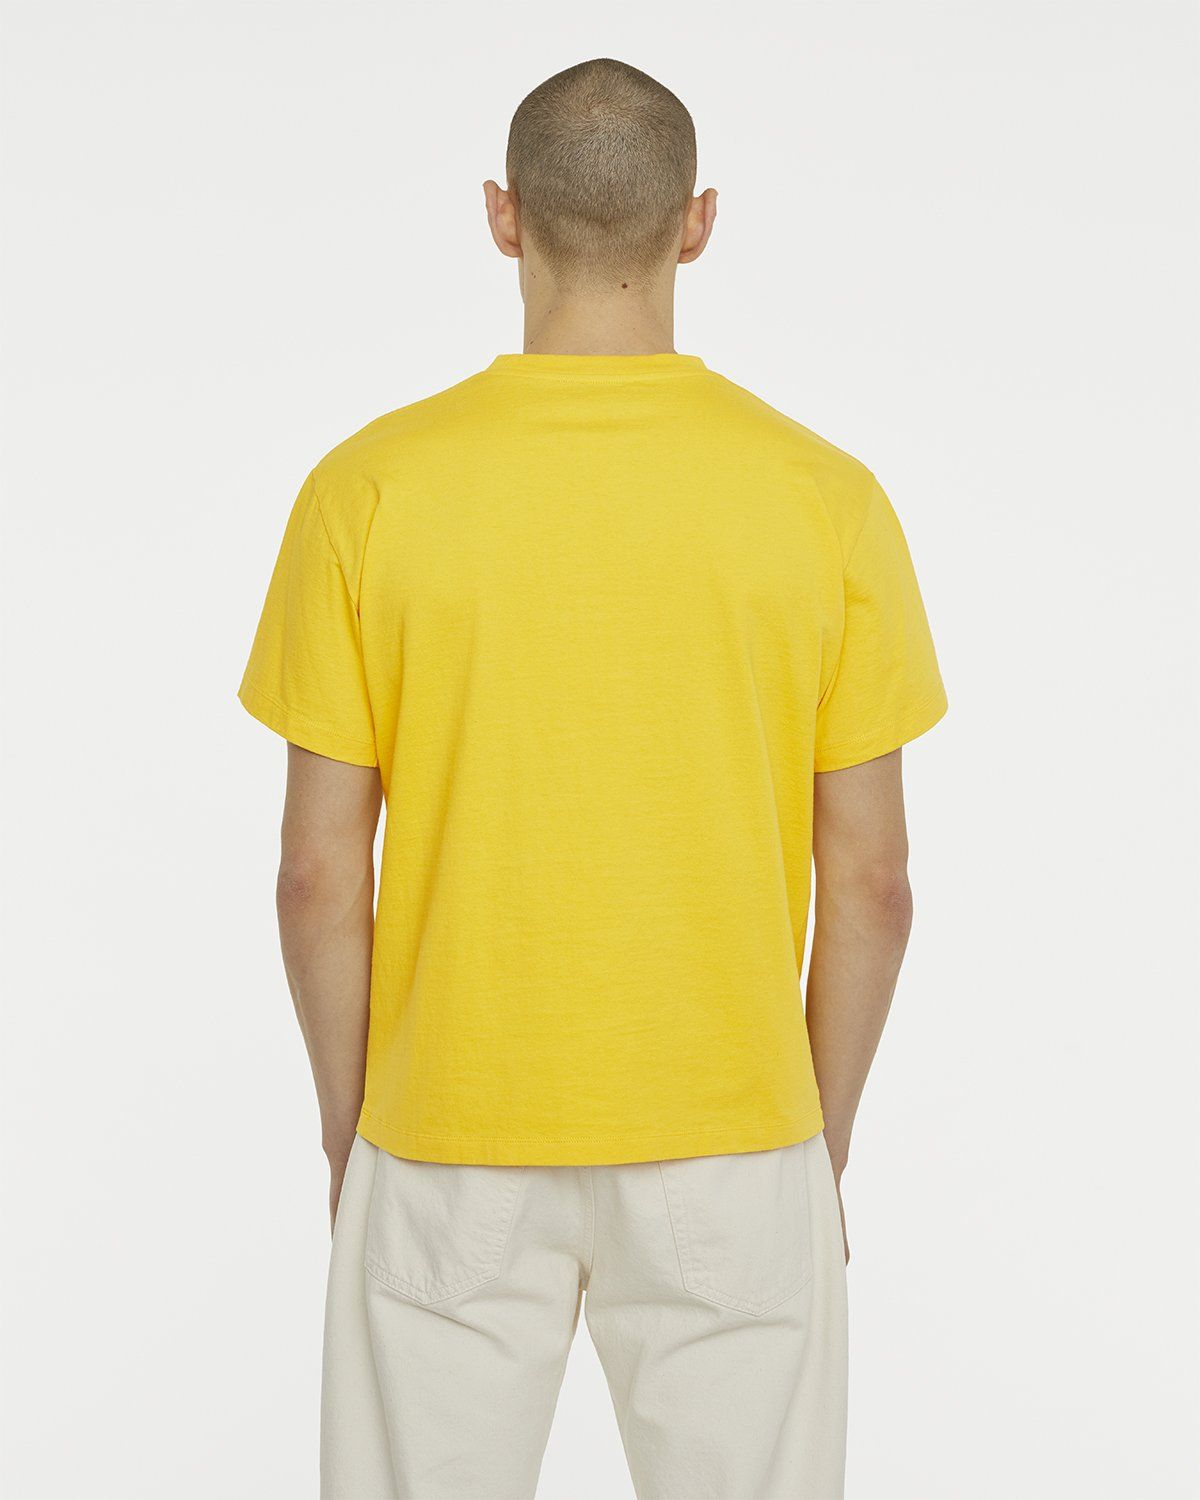 Aries - No Problemo Tee Yellow - Image 5